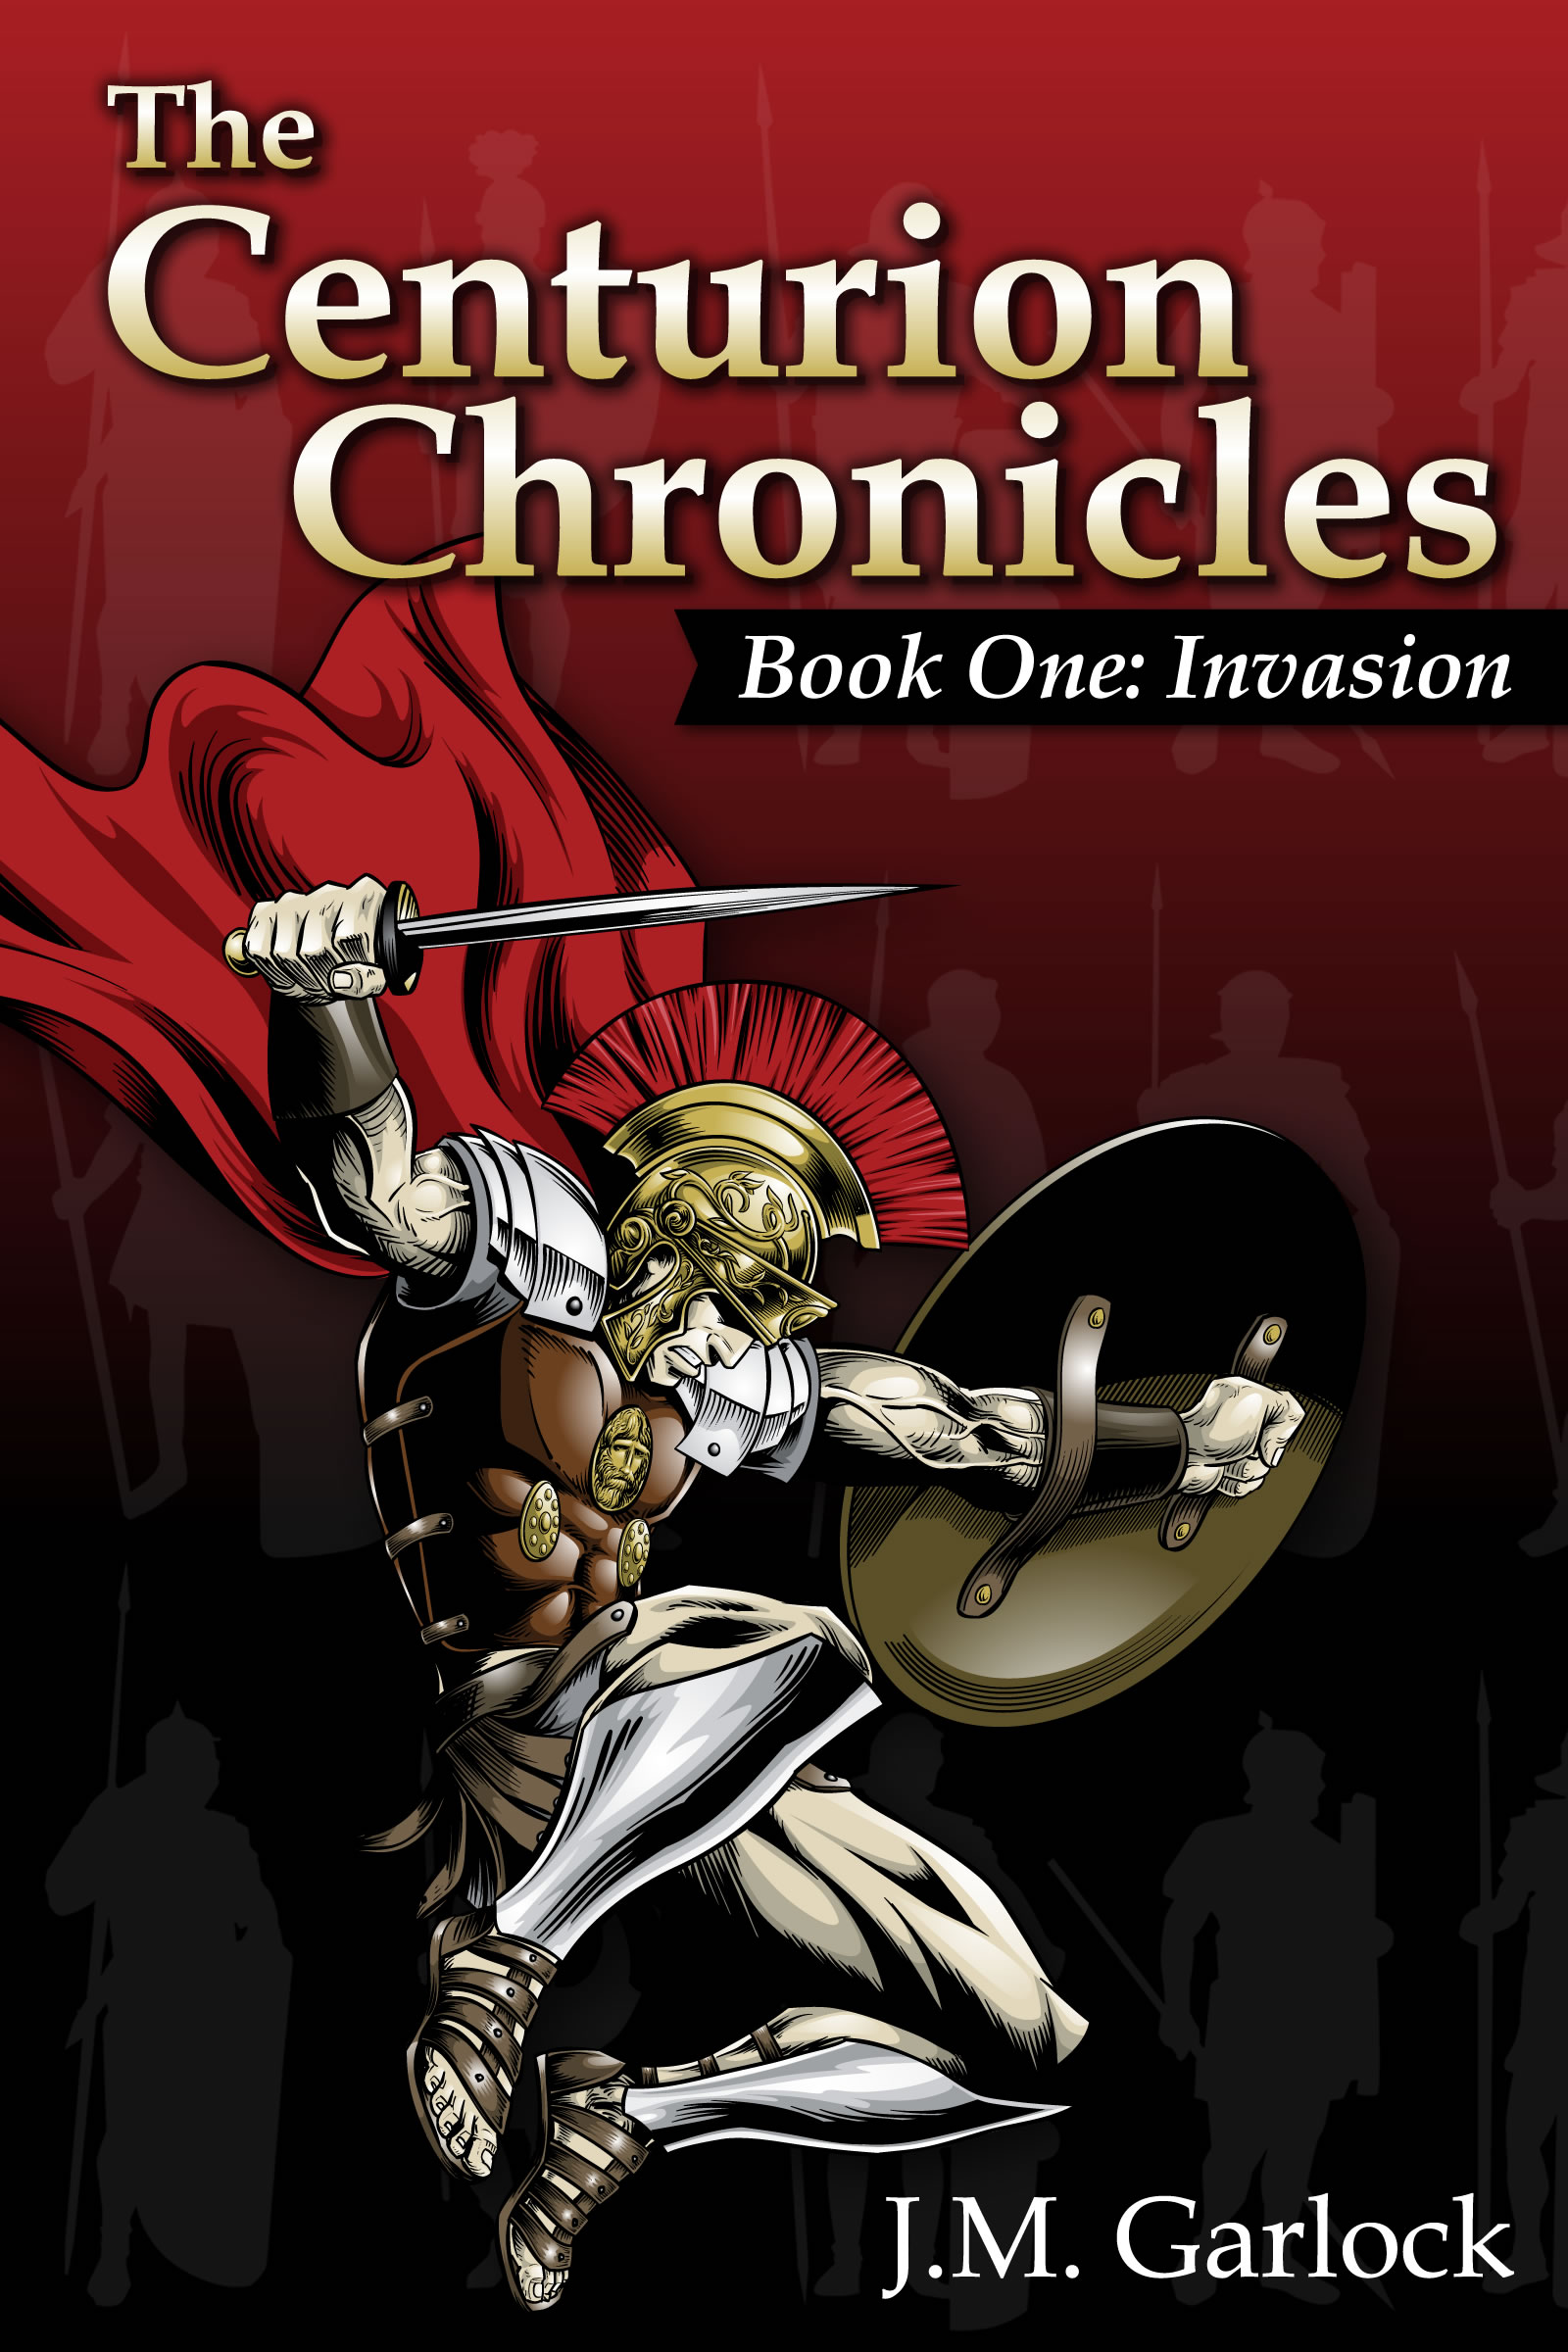 J.M. Garlock - The Centurion Chronicles - Book One